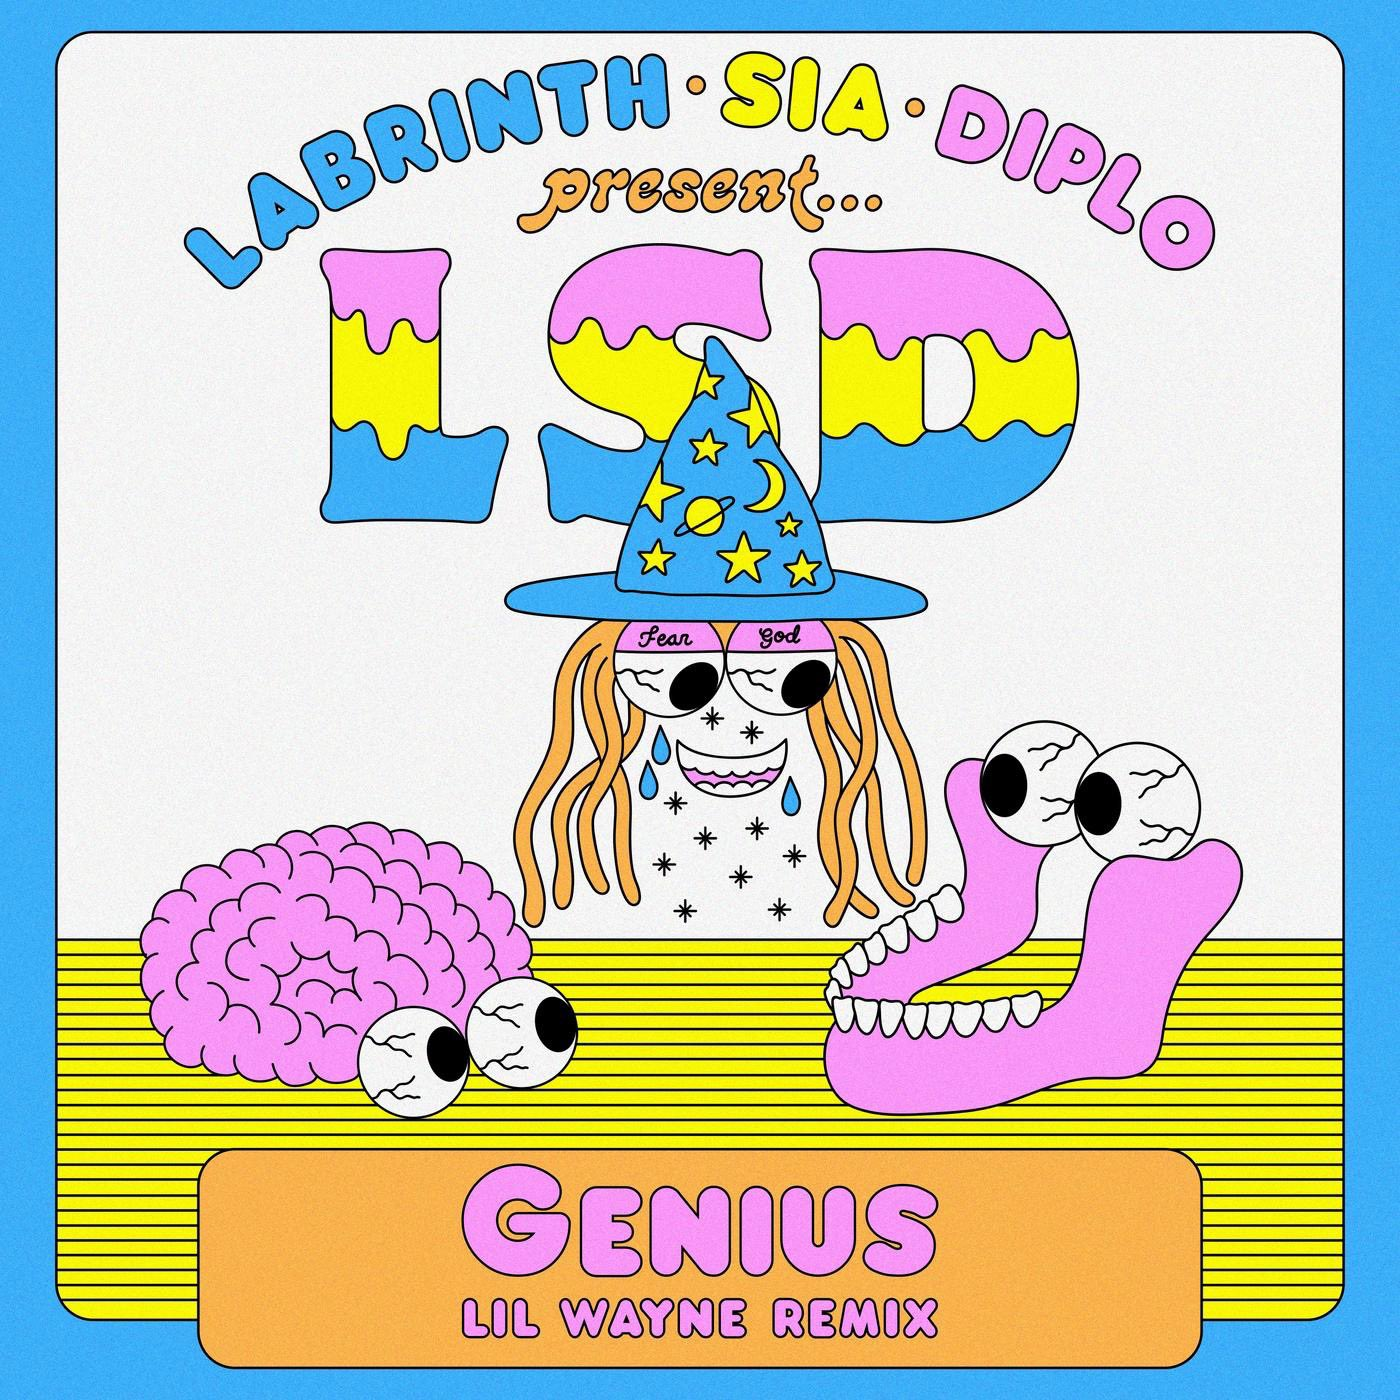 Genius Remix – LSD ft. Lil Wayne